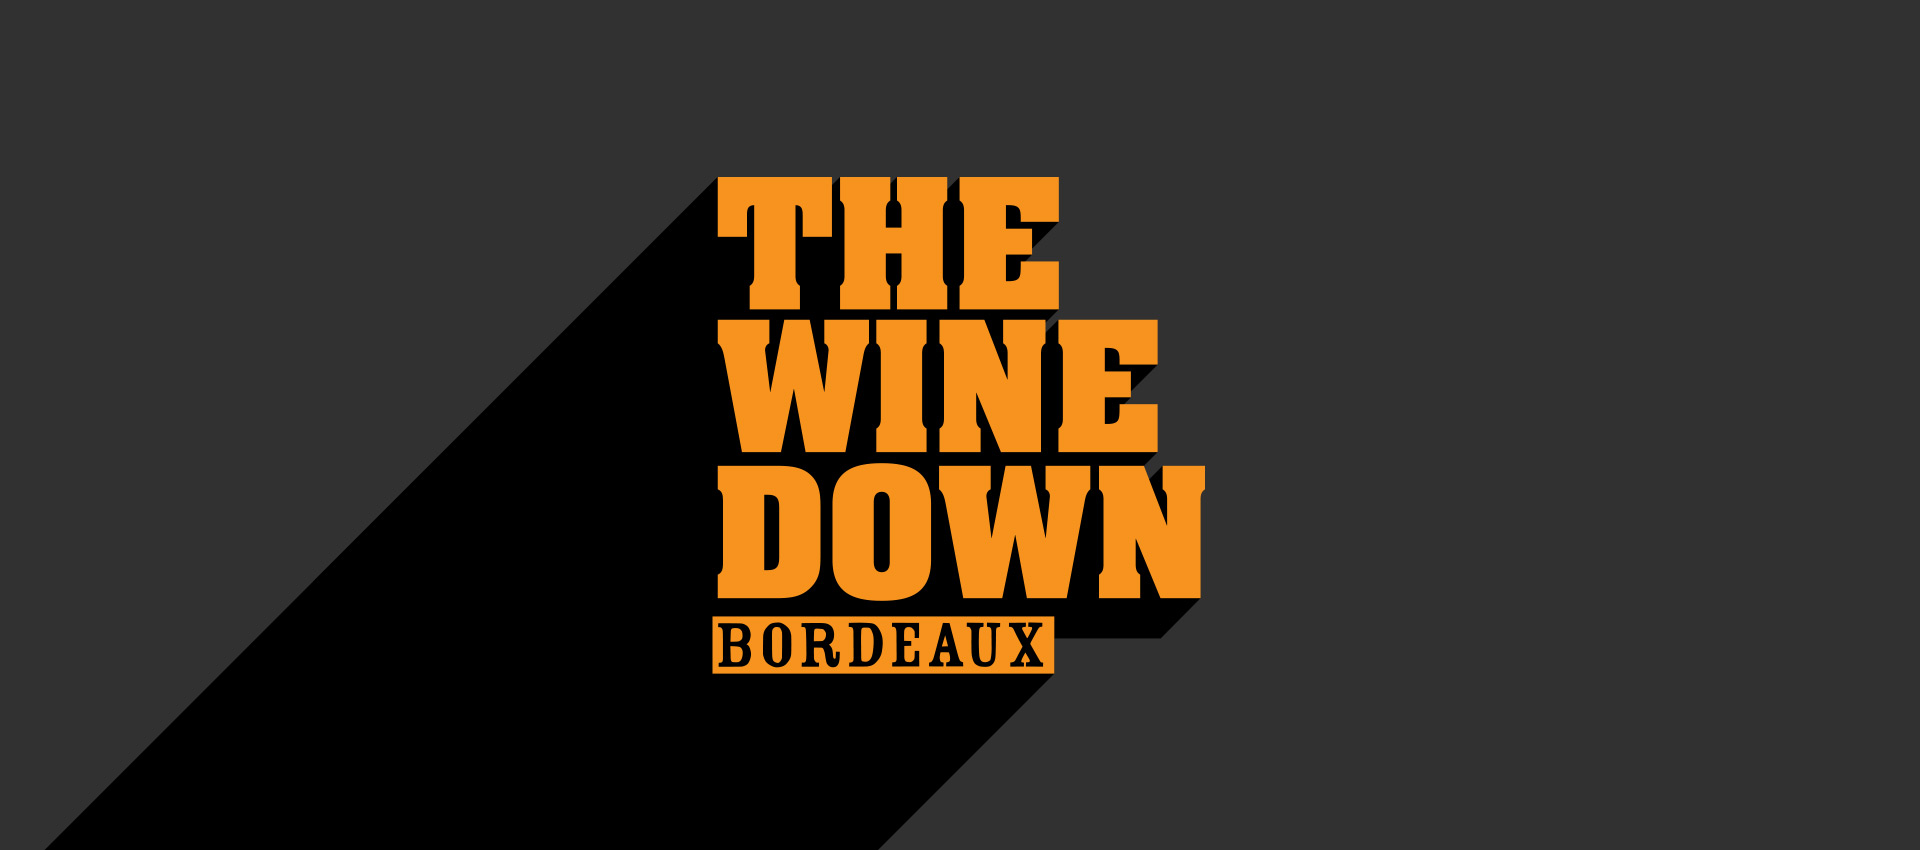 Bordeaux: The Wine Down